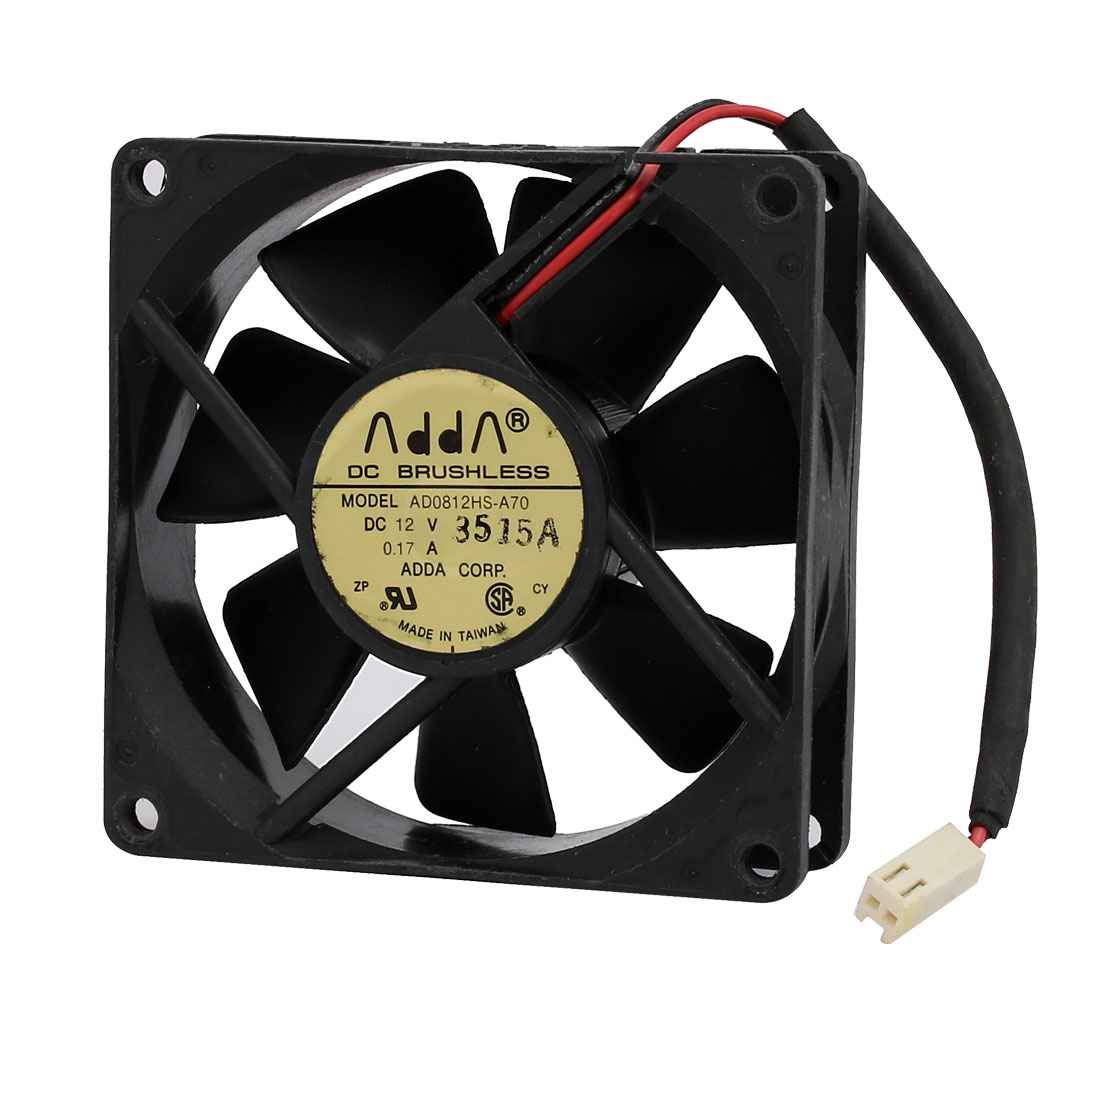 DC 12V 0.17A 80mm x 80mm x 25mm Black 7 Vanes Brushless Cooling Fan